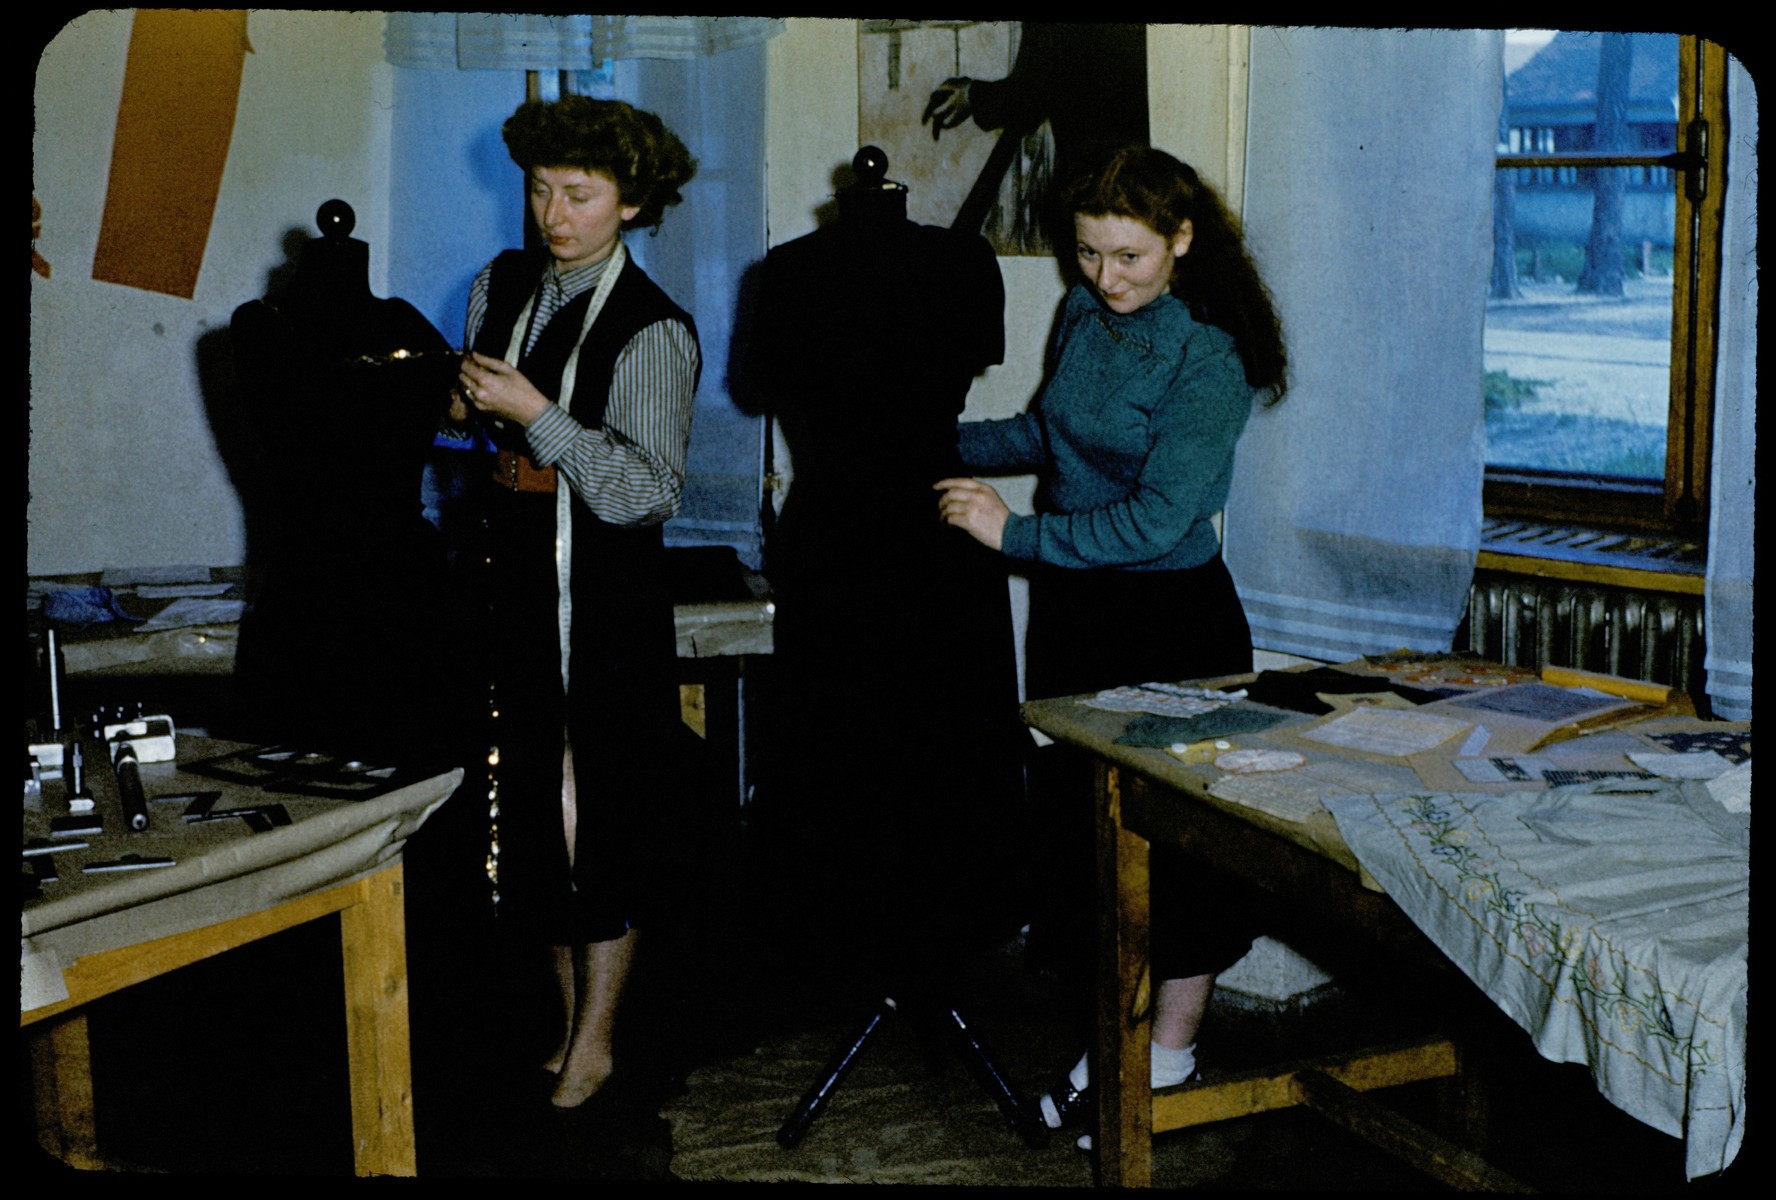 Women learn dressmaking at an ORT vocational training school in the Foehrenwald displaced persons camp.  Standing on the right is Brenda Maryles (nee Soroka) and the woman on the left is the instructor.